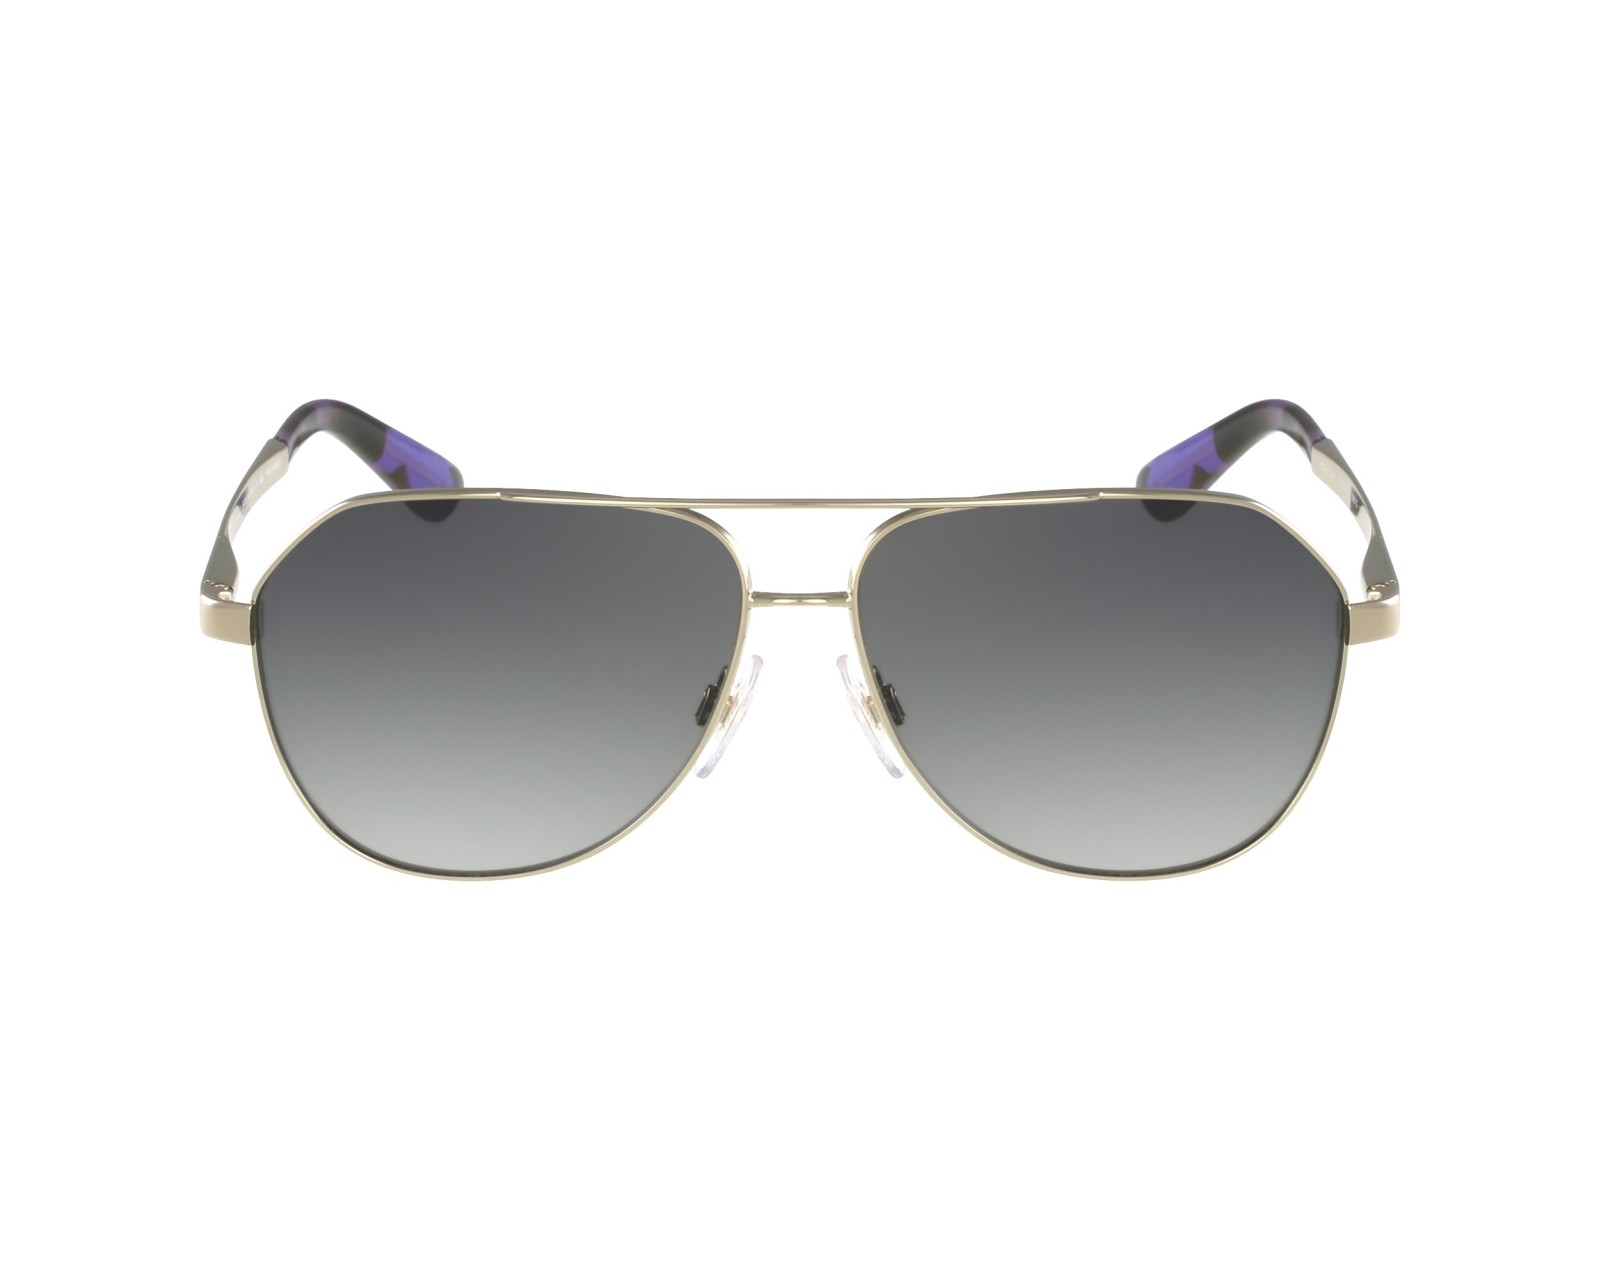 Sunglasses DG2144 Pale Gold, 59 Dolce & Gabbana